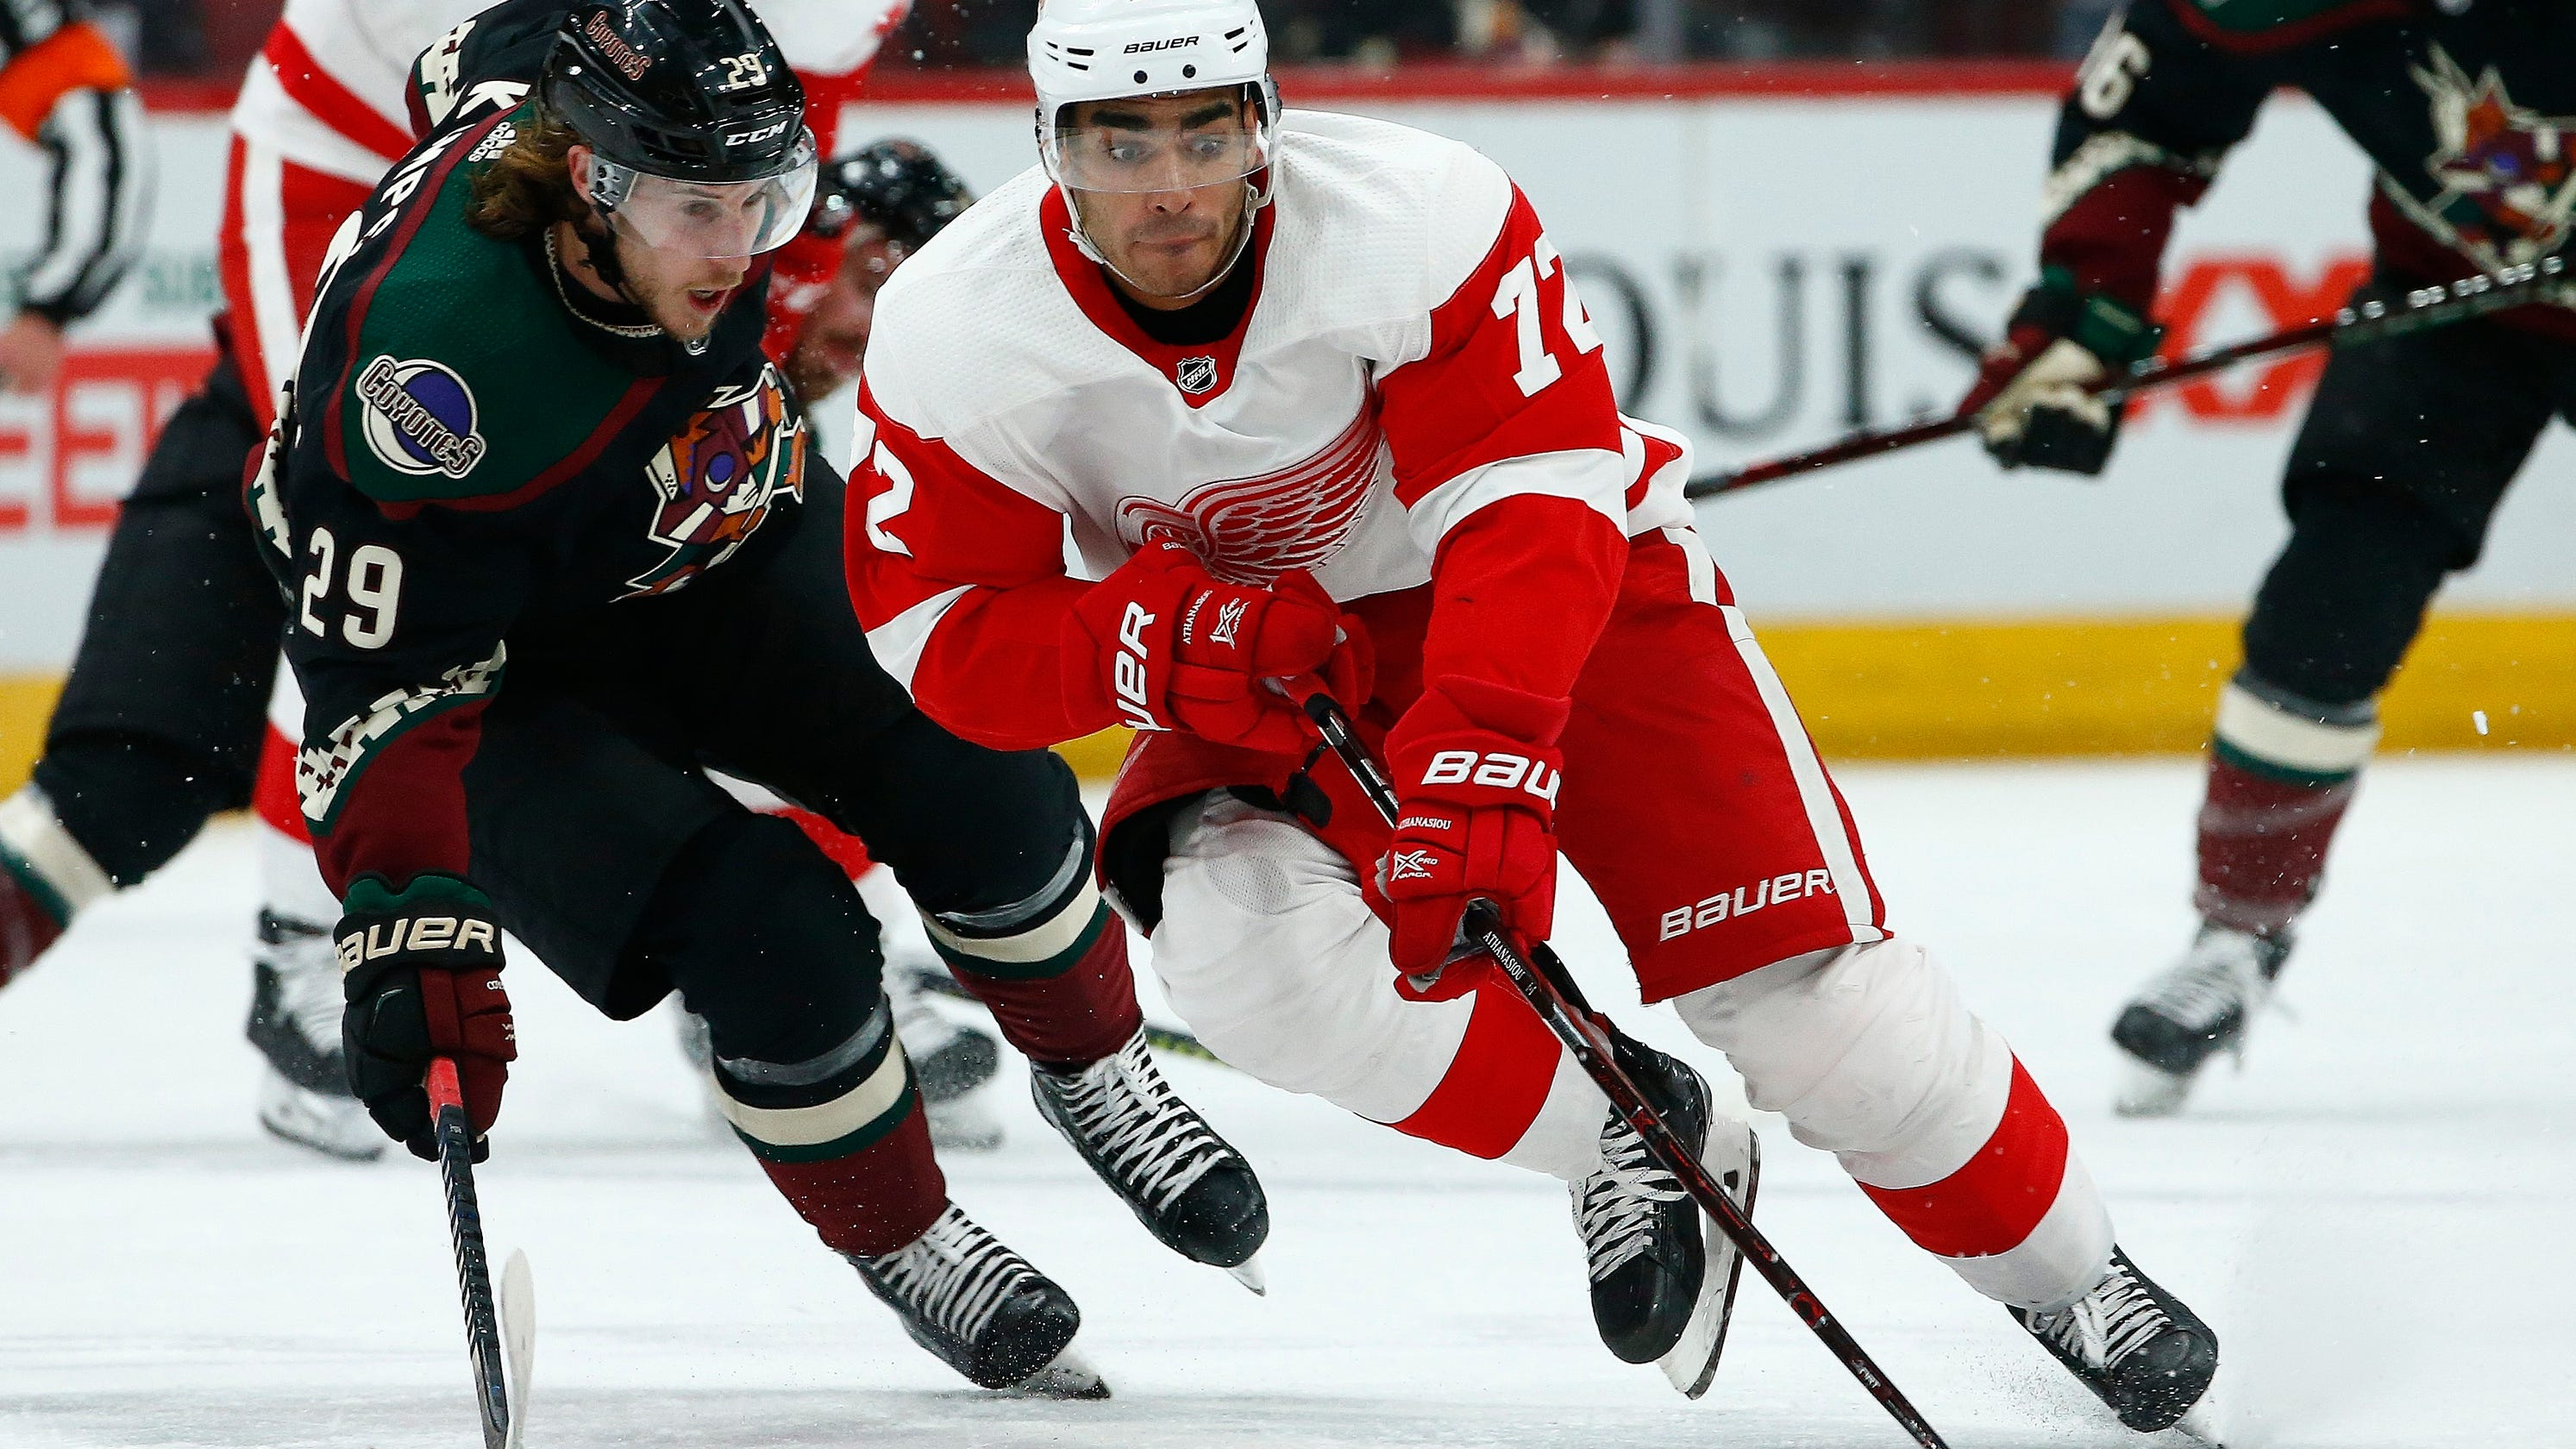 Arizona Coyotes 3, Detroit Red Wings 1: Photos